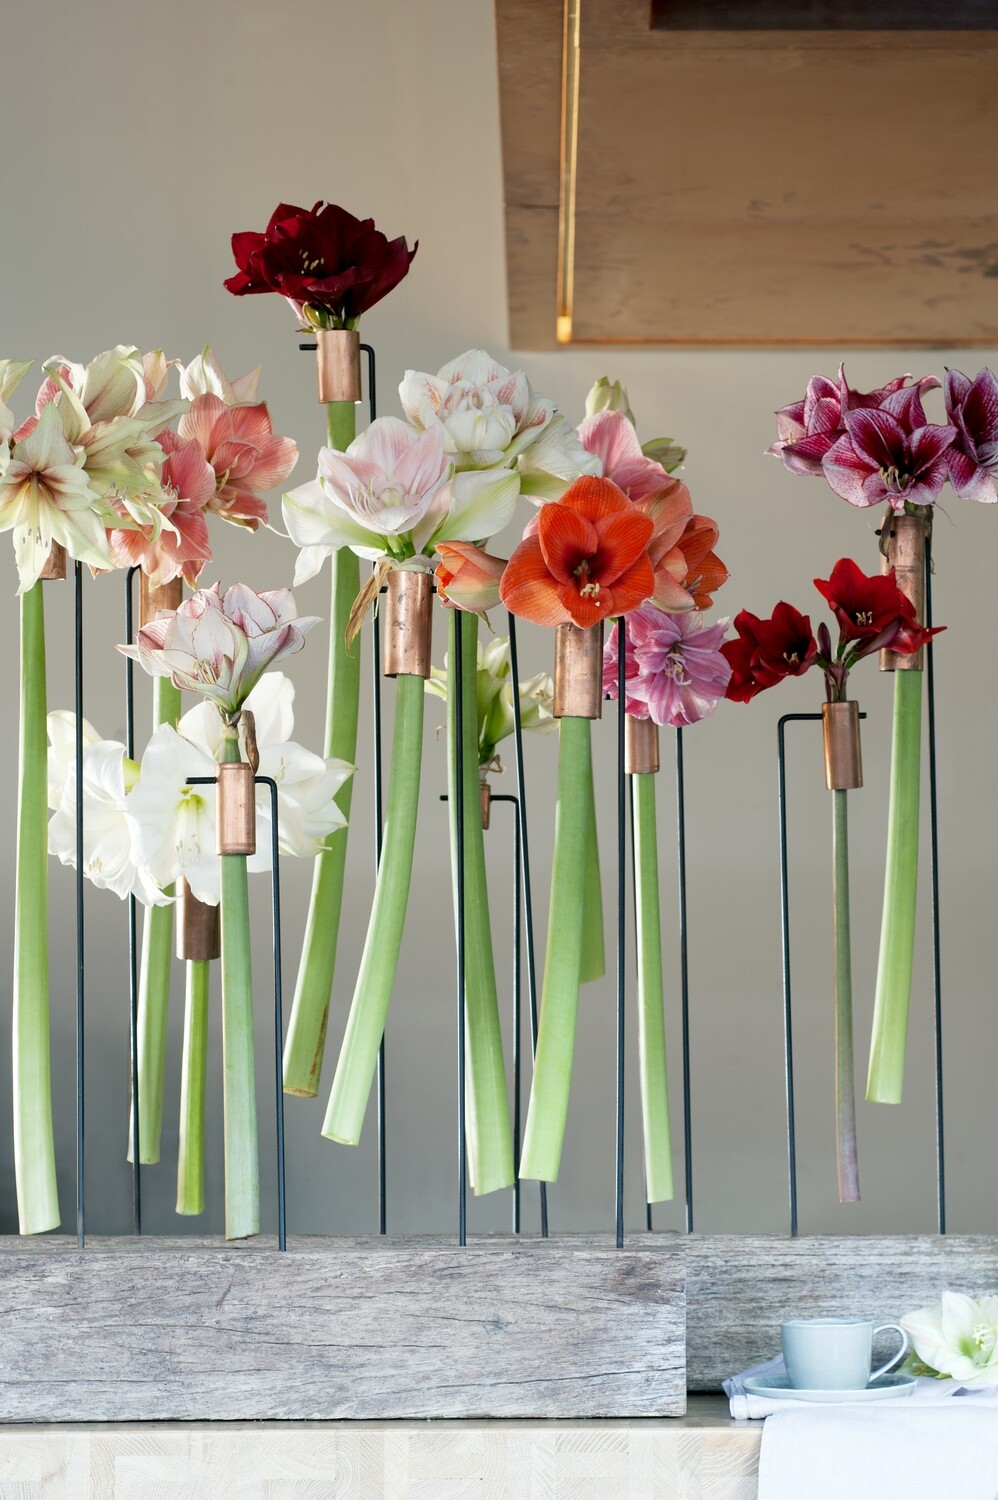 Floristry Taster Course